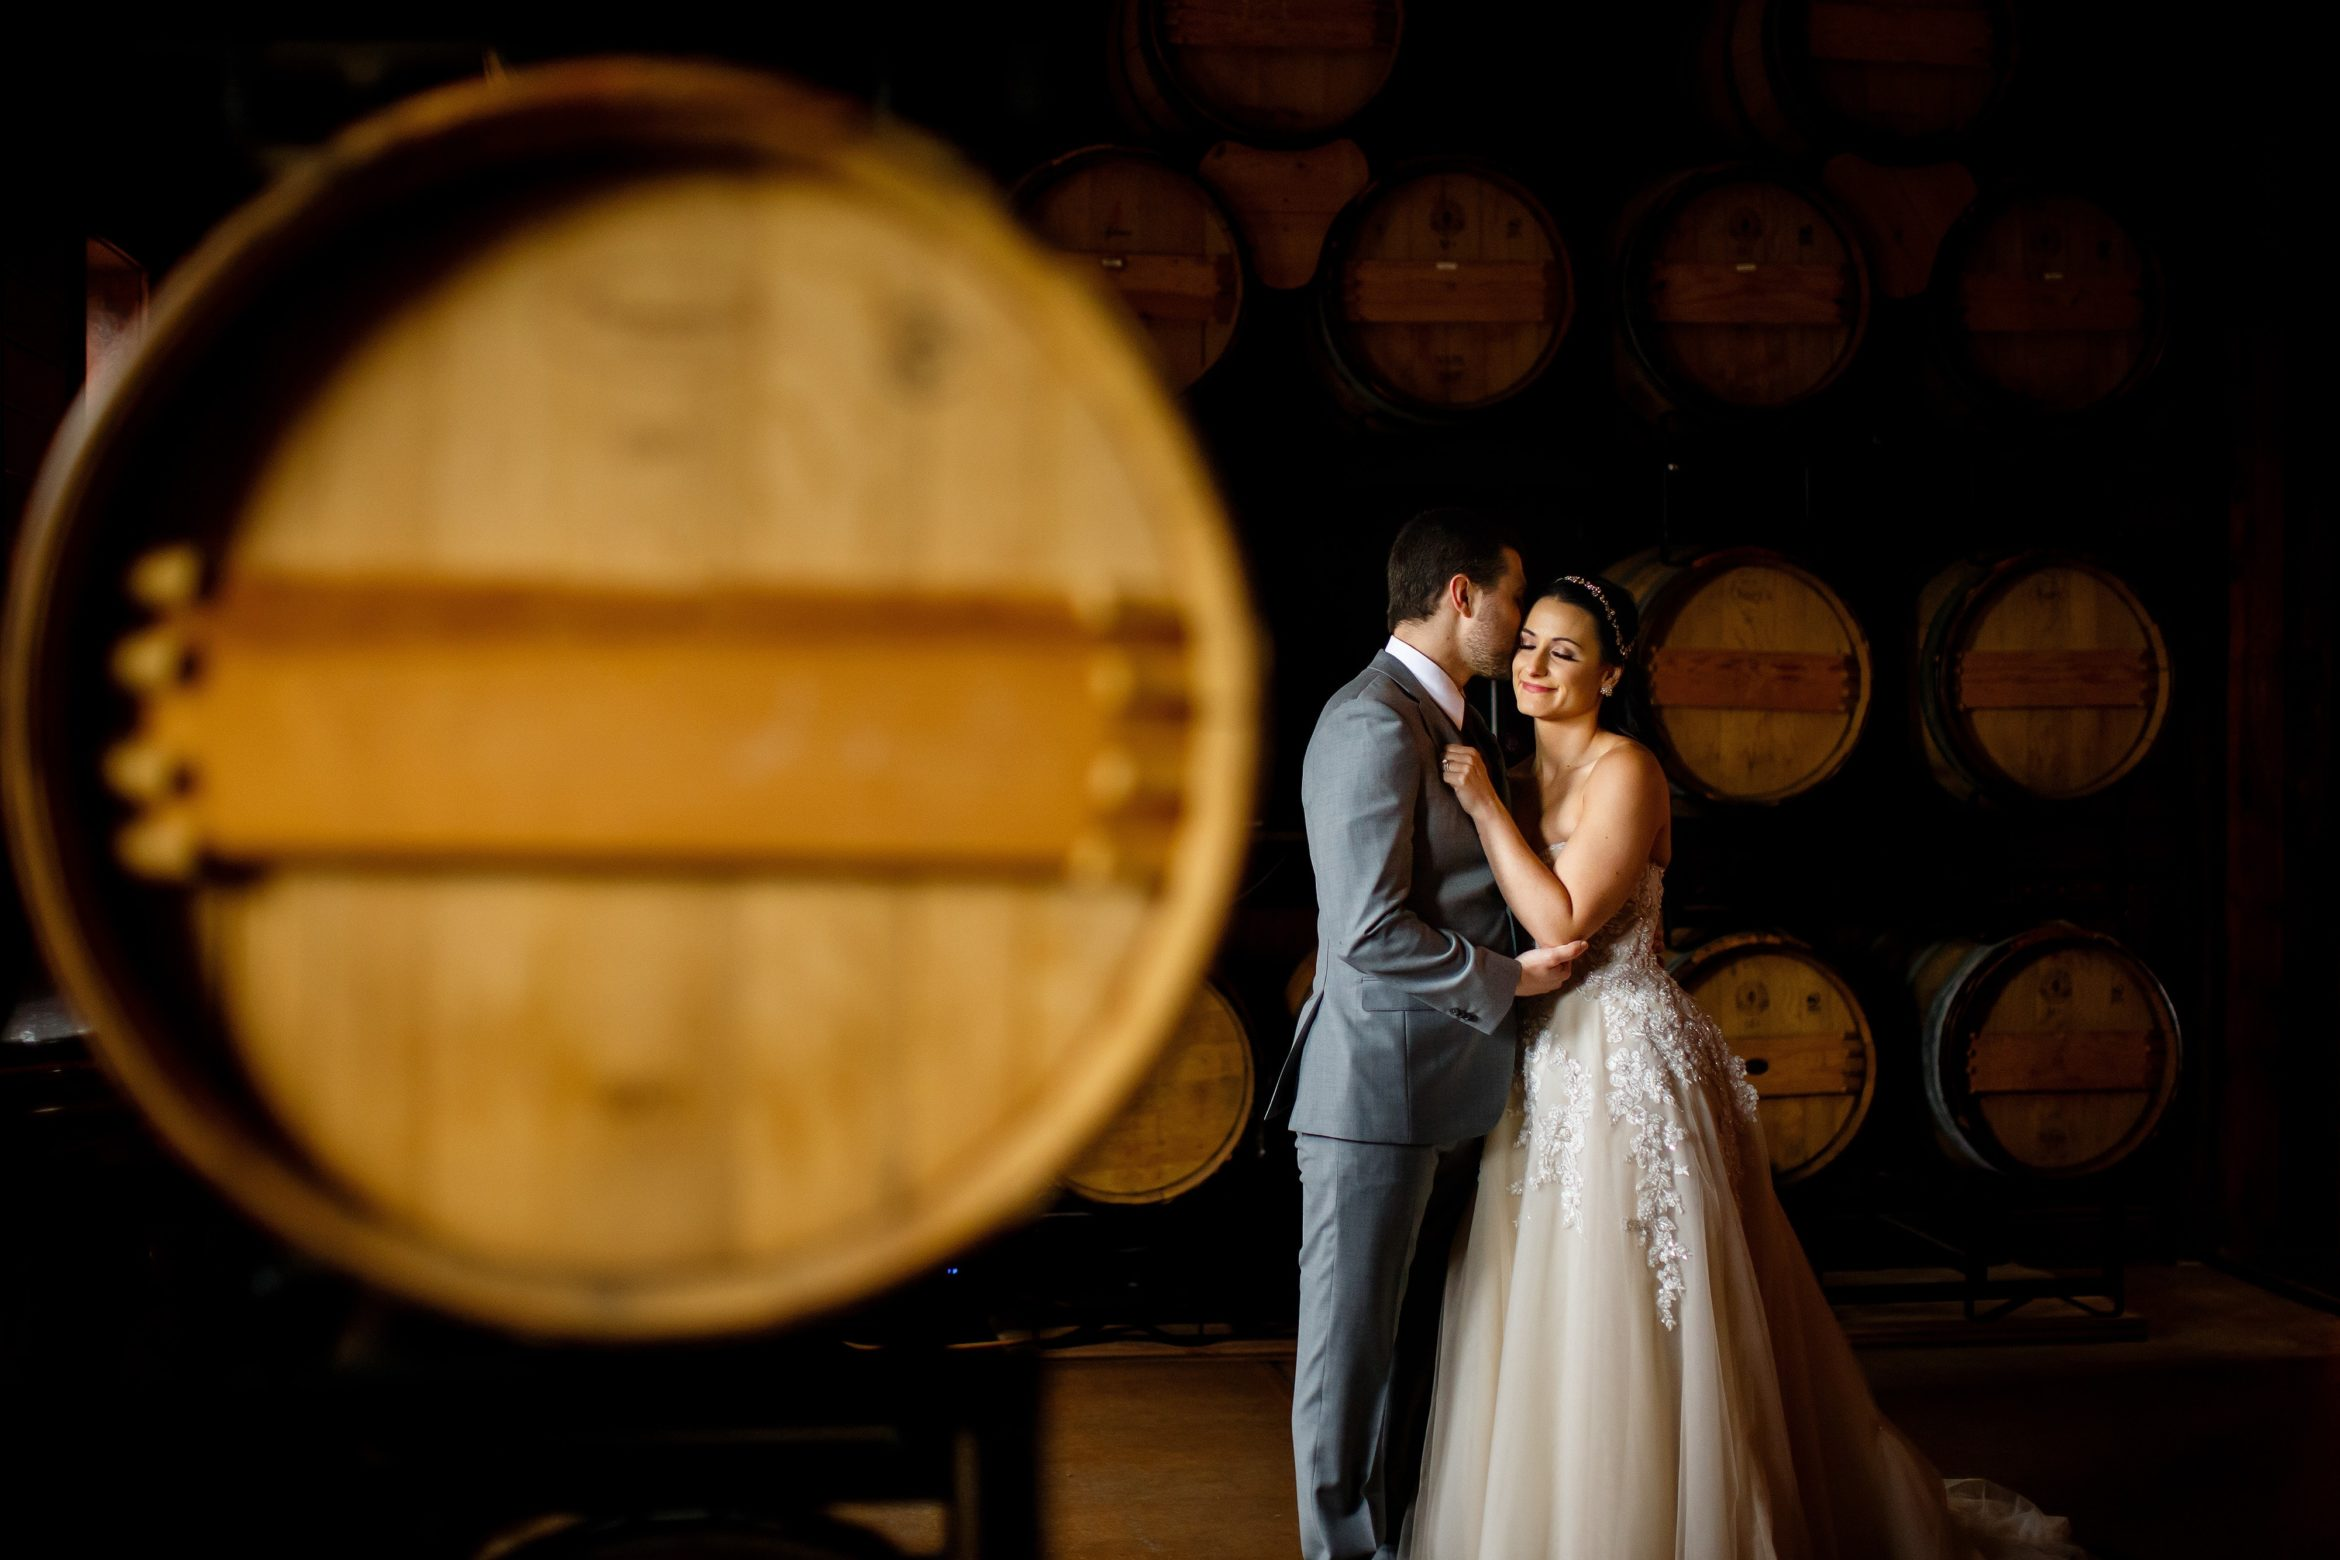 Jordan kisses Danielle on the cheek in the barrell room at Crooked Willow Farms in Larkspur, Colorado